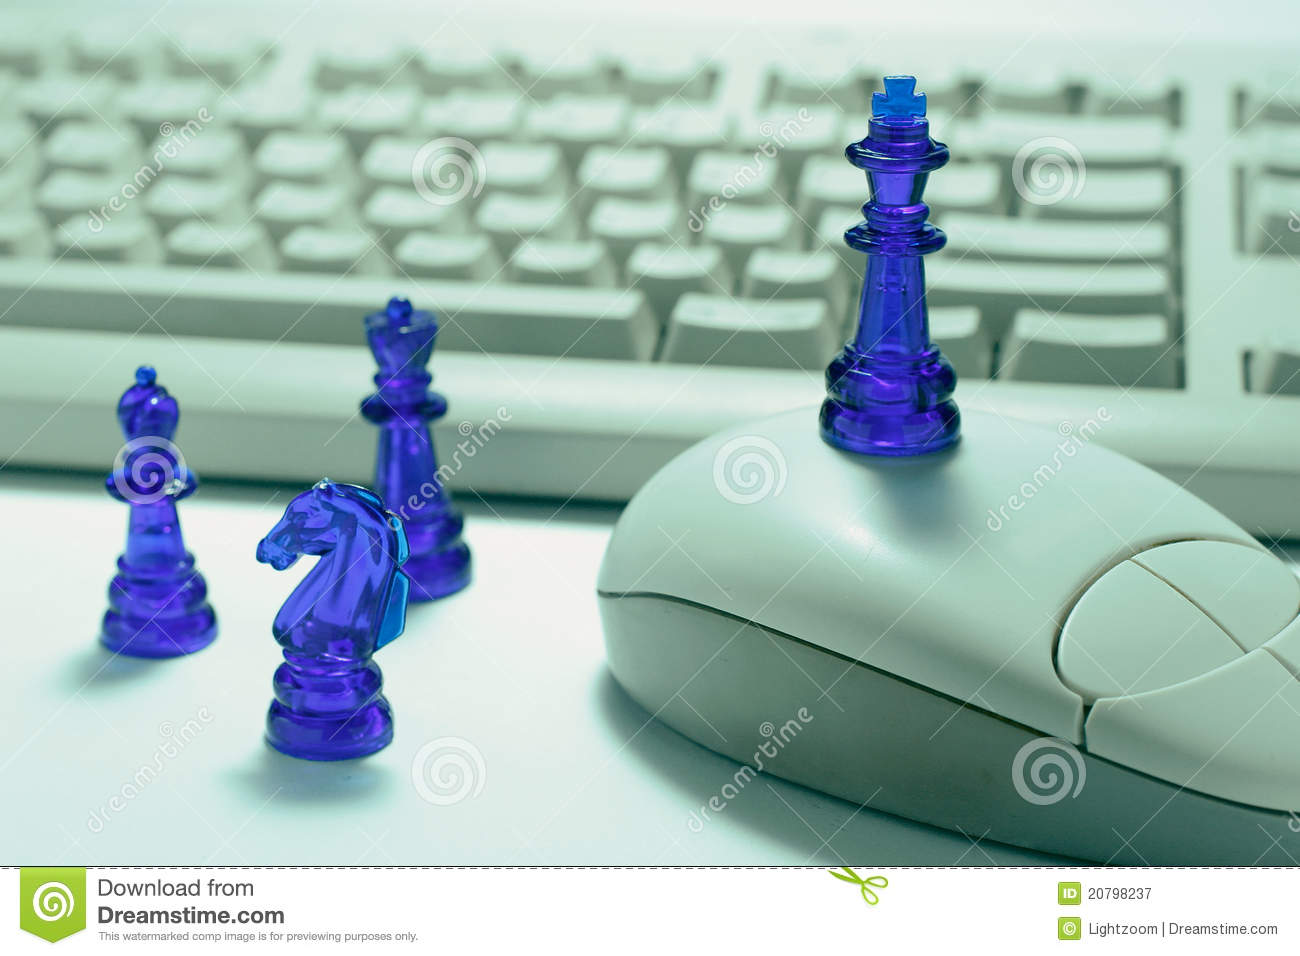 Chess Pieces and Computer